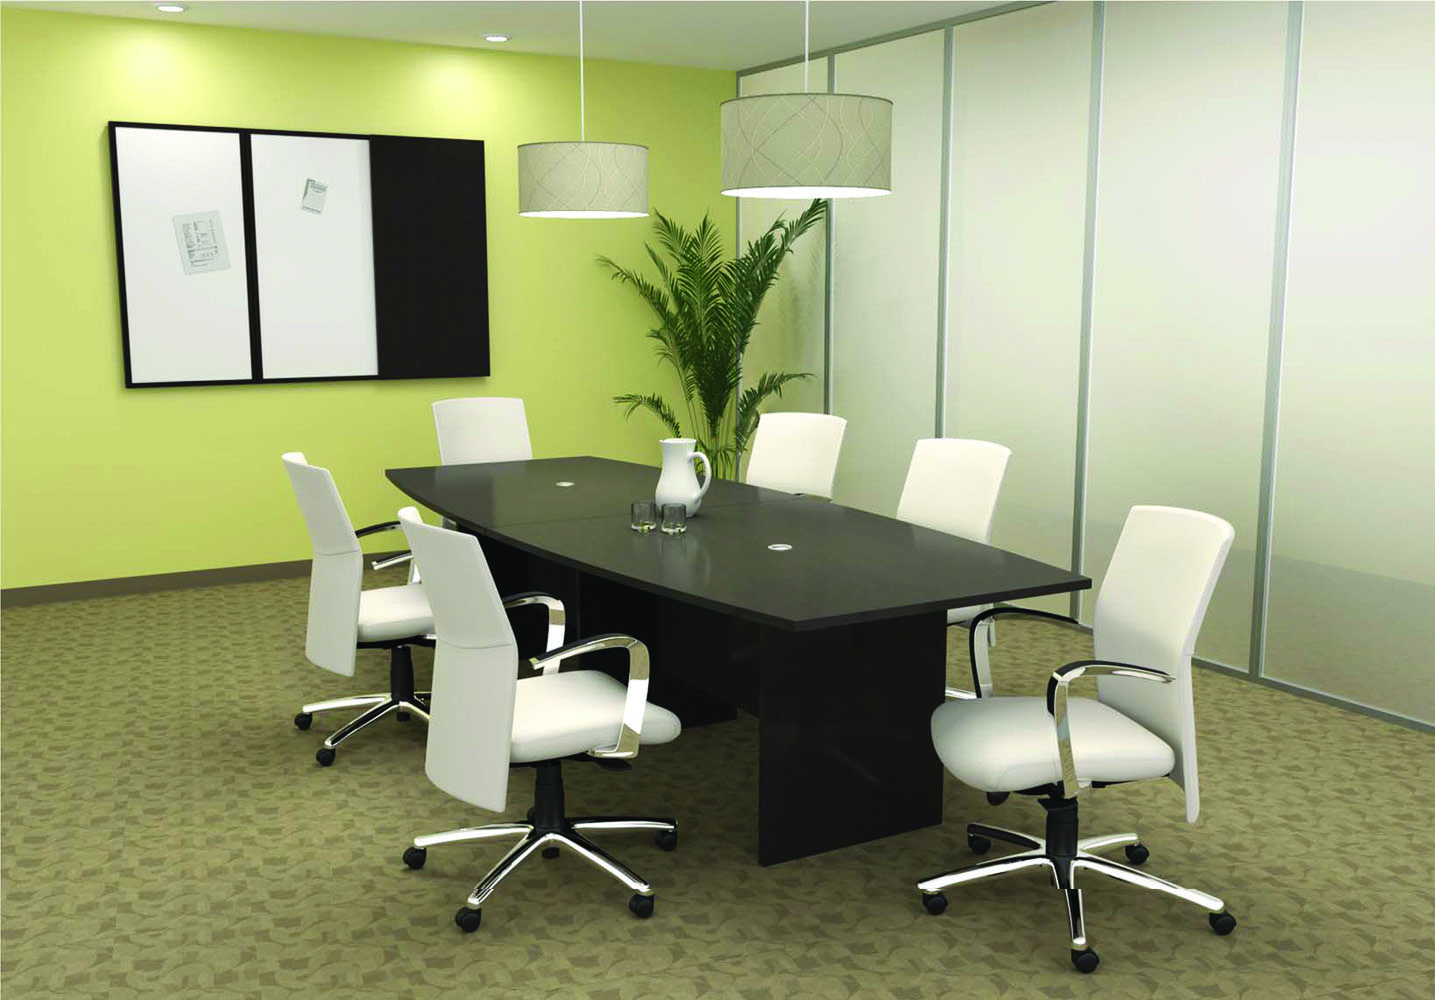 Sofa Convertible Boardroom Table And Chairs - Meeting Room Furniture